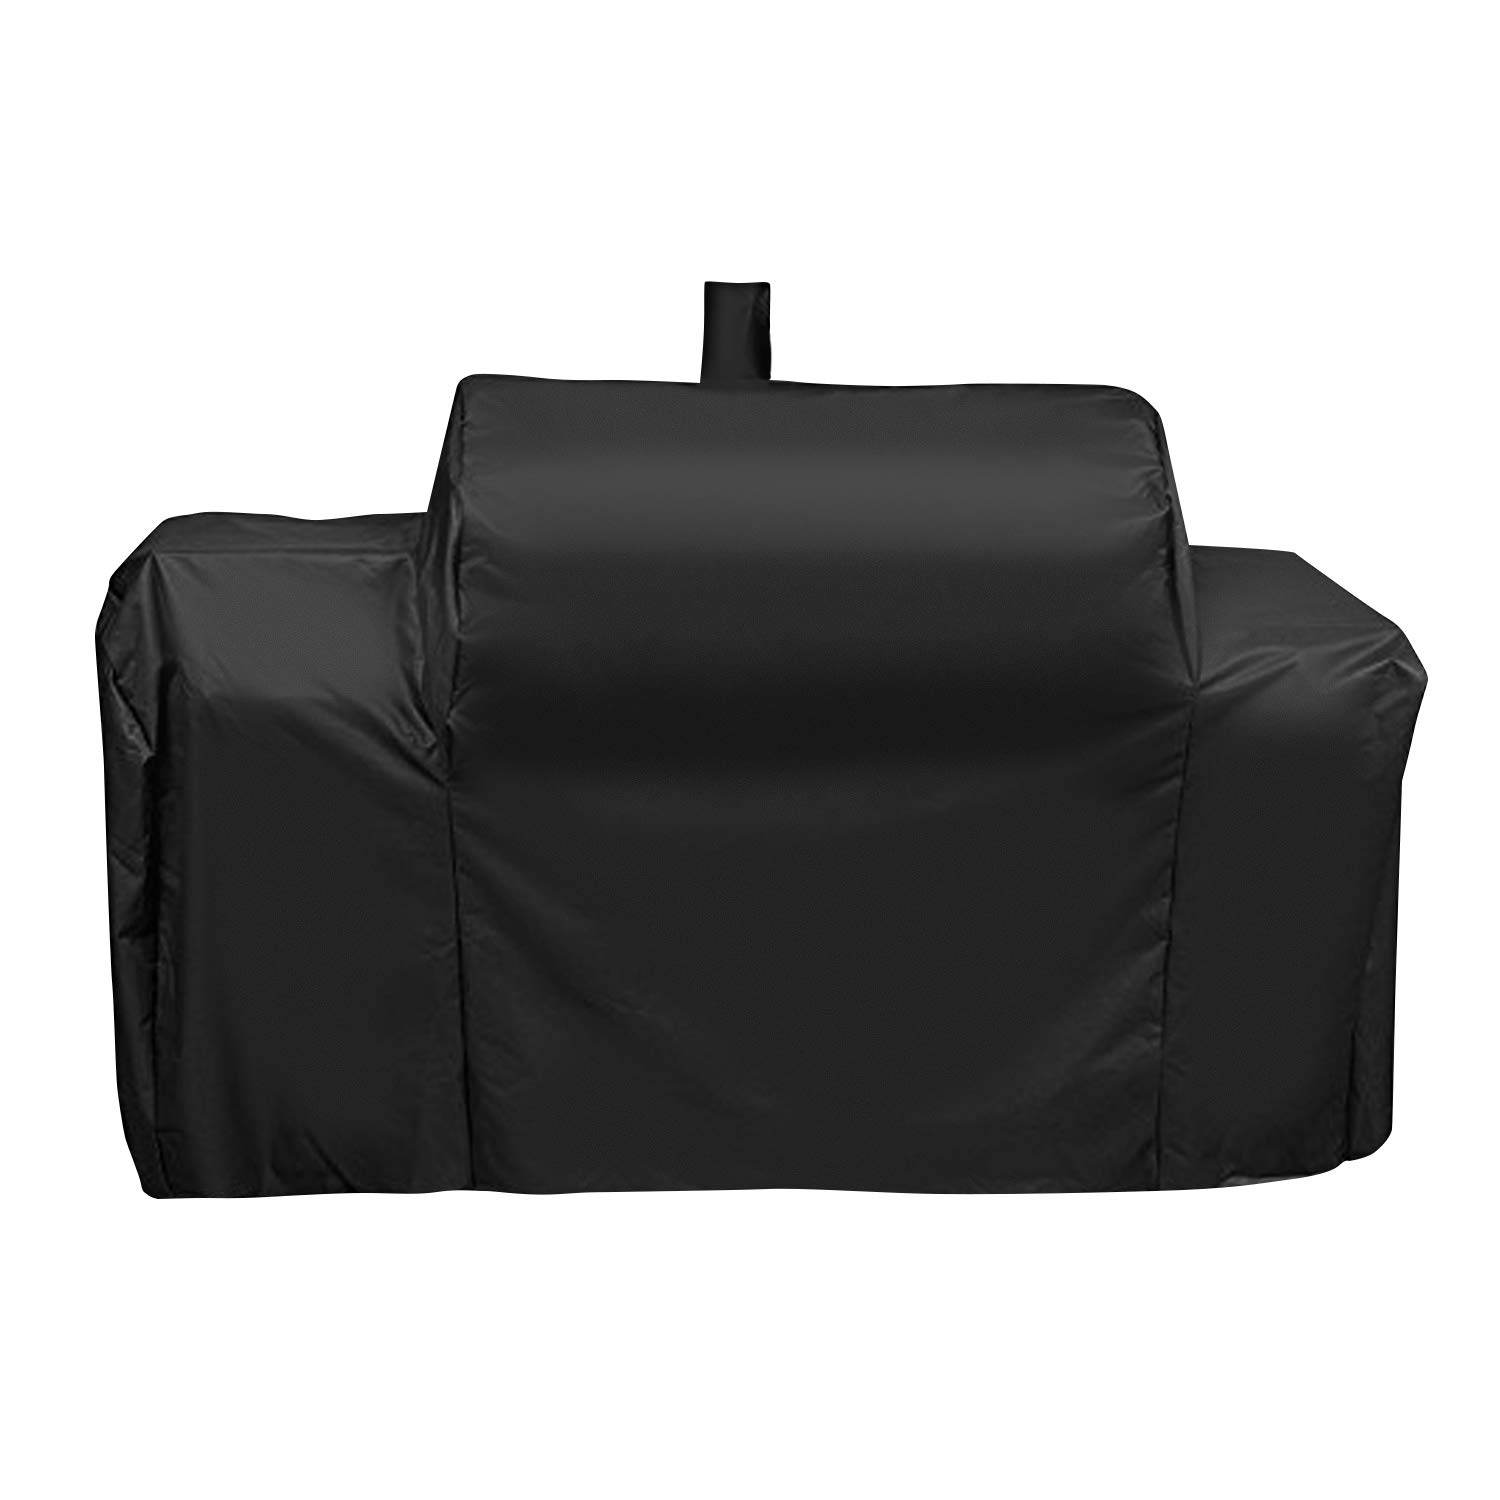 UNICOOK Heavy Duty Waterproof Grill Cover for Oklahoma Joe's Longhorn Combo Smoker, Outdoor Charcoal/Smoker/Gas Combo Grill Cover, Offset Smoker Cover, Fade and UV Resistant, Black by Unicook